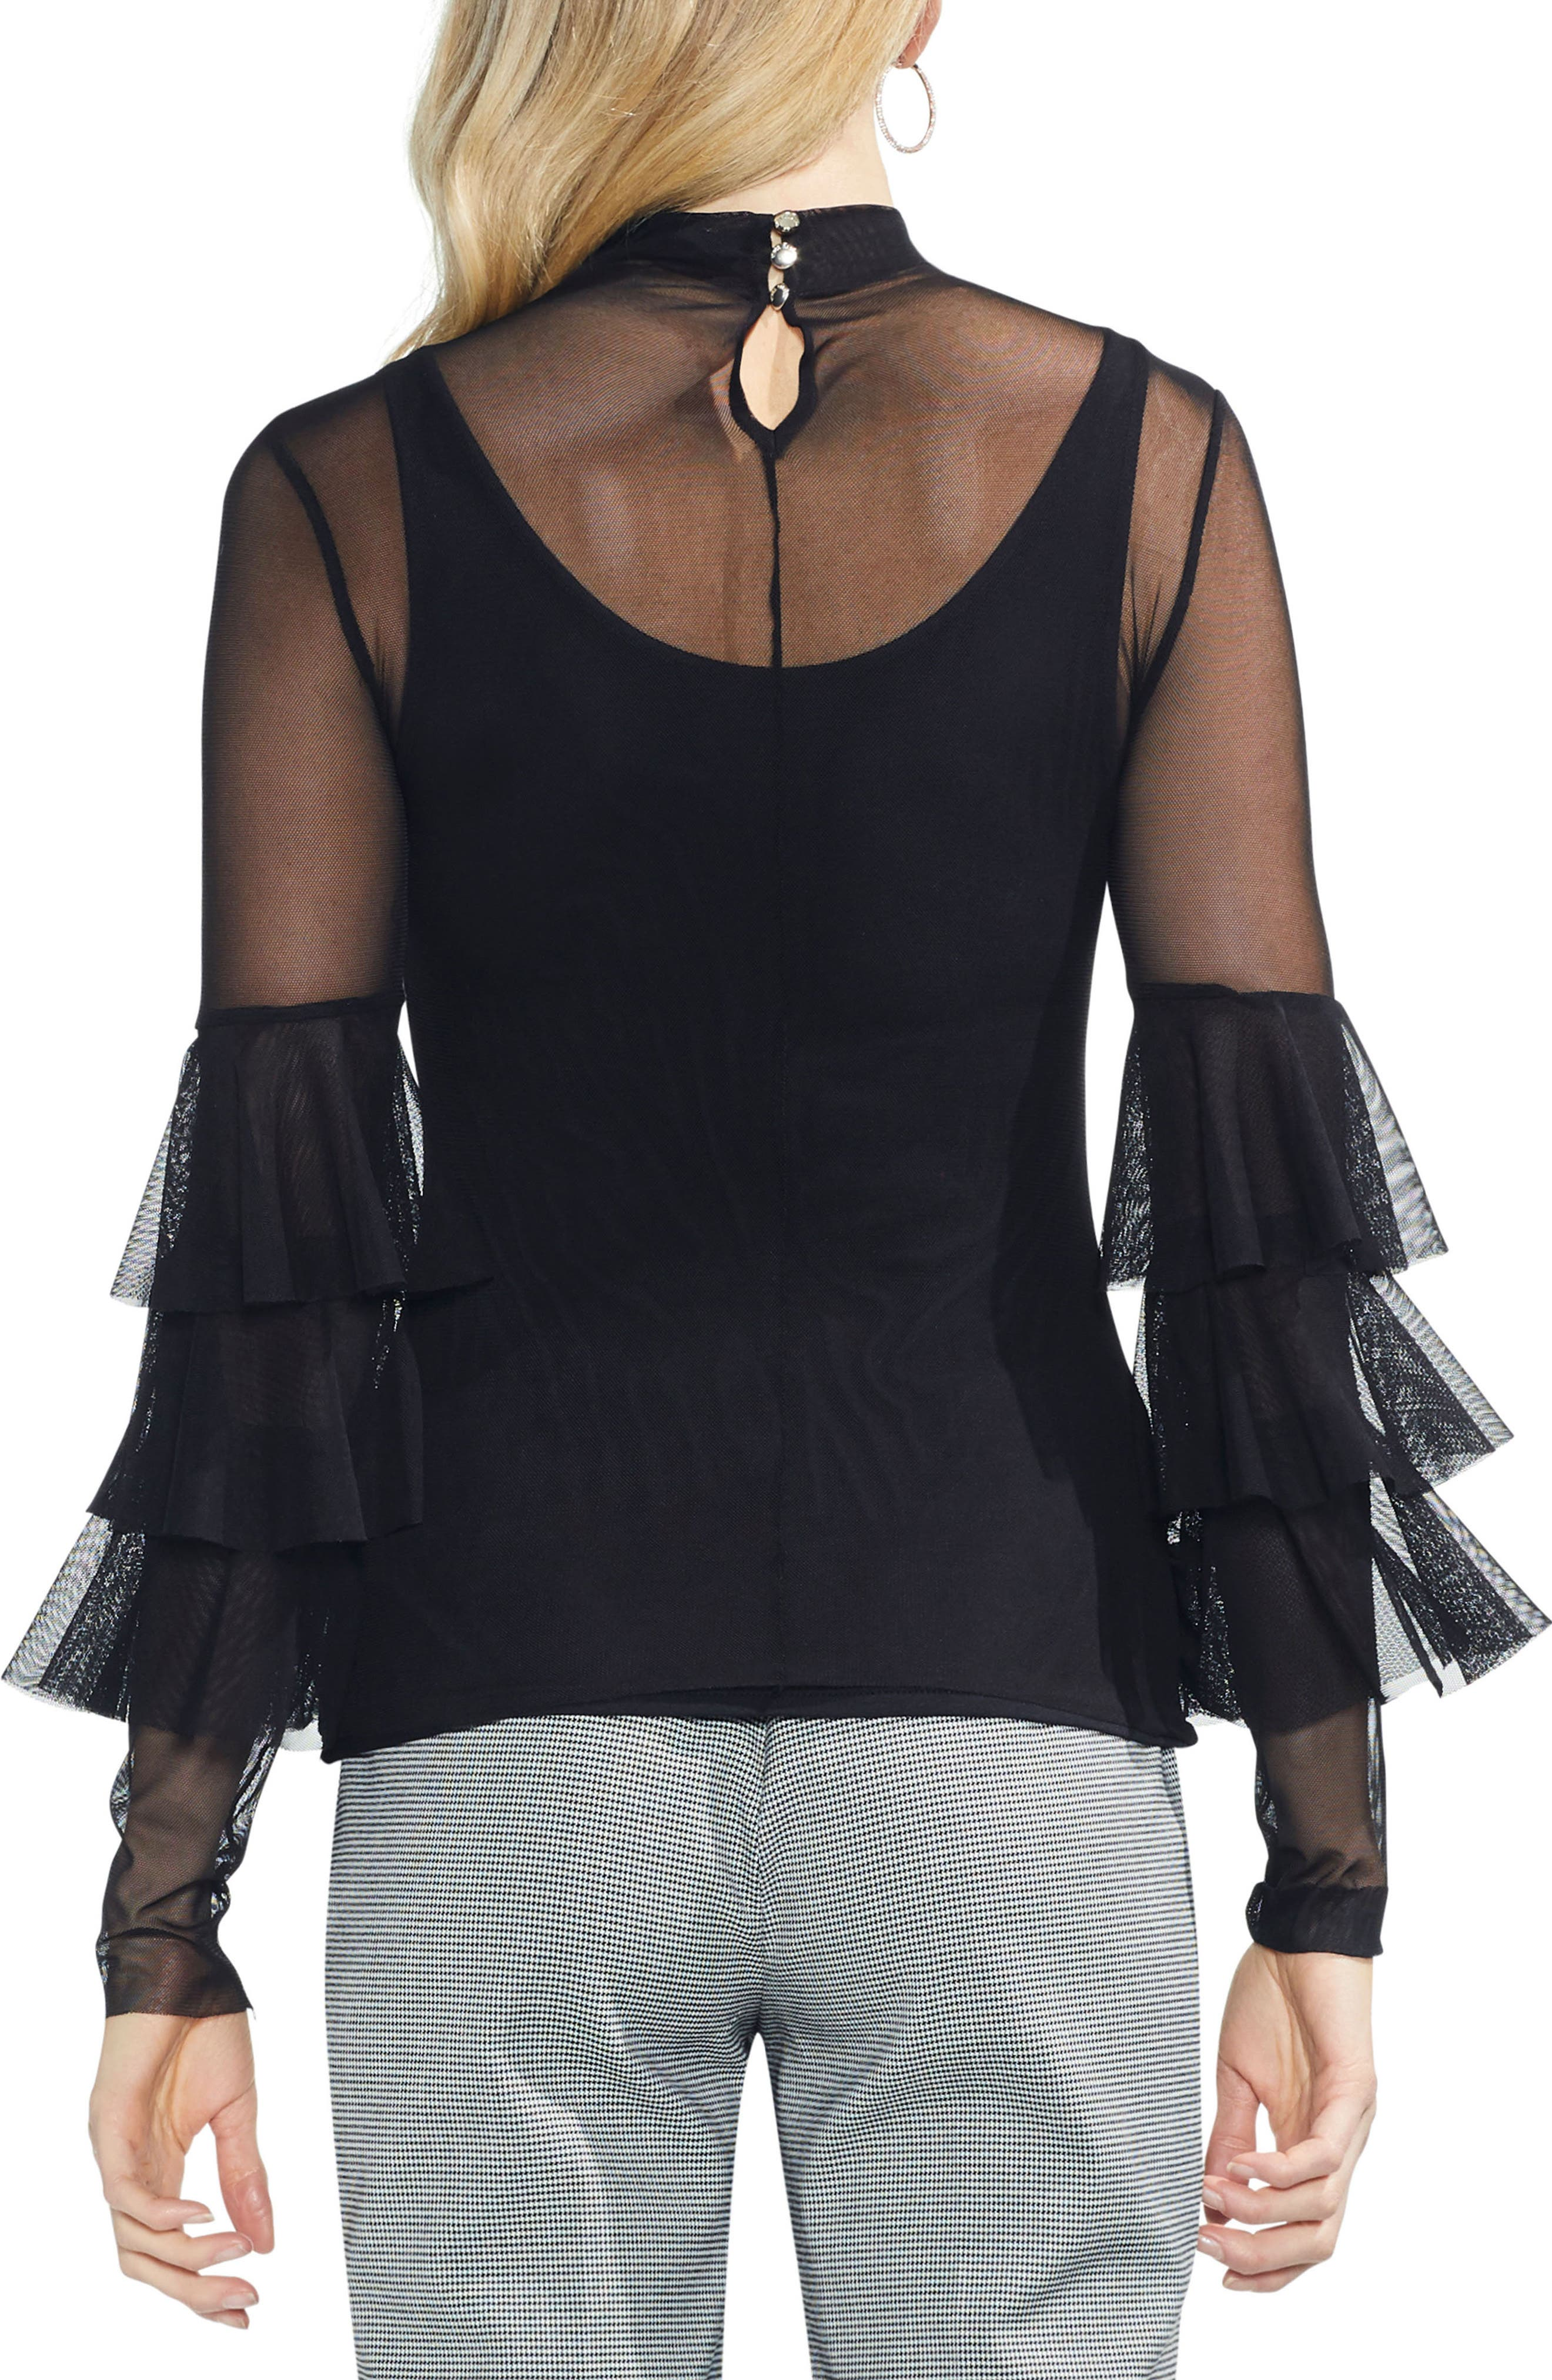 Ruffled Stretch Mesh Top,                             Alternate thumbnail 2, color,                             006